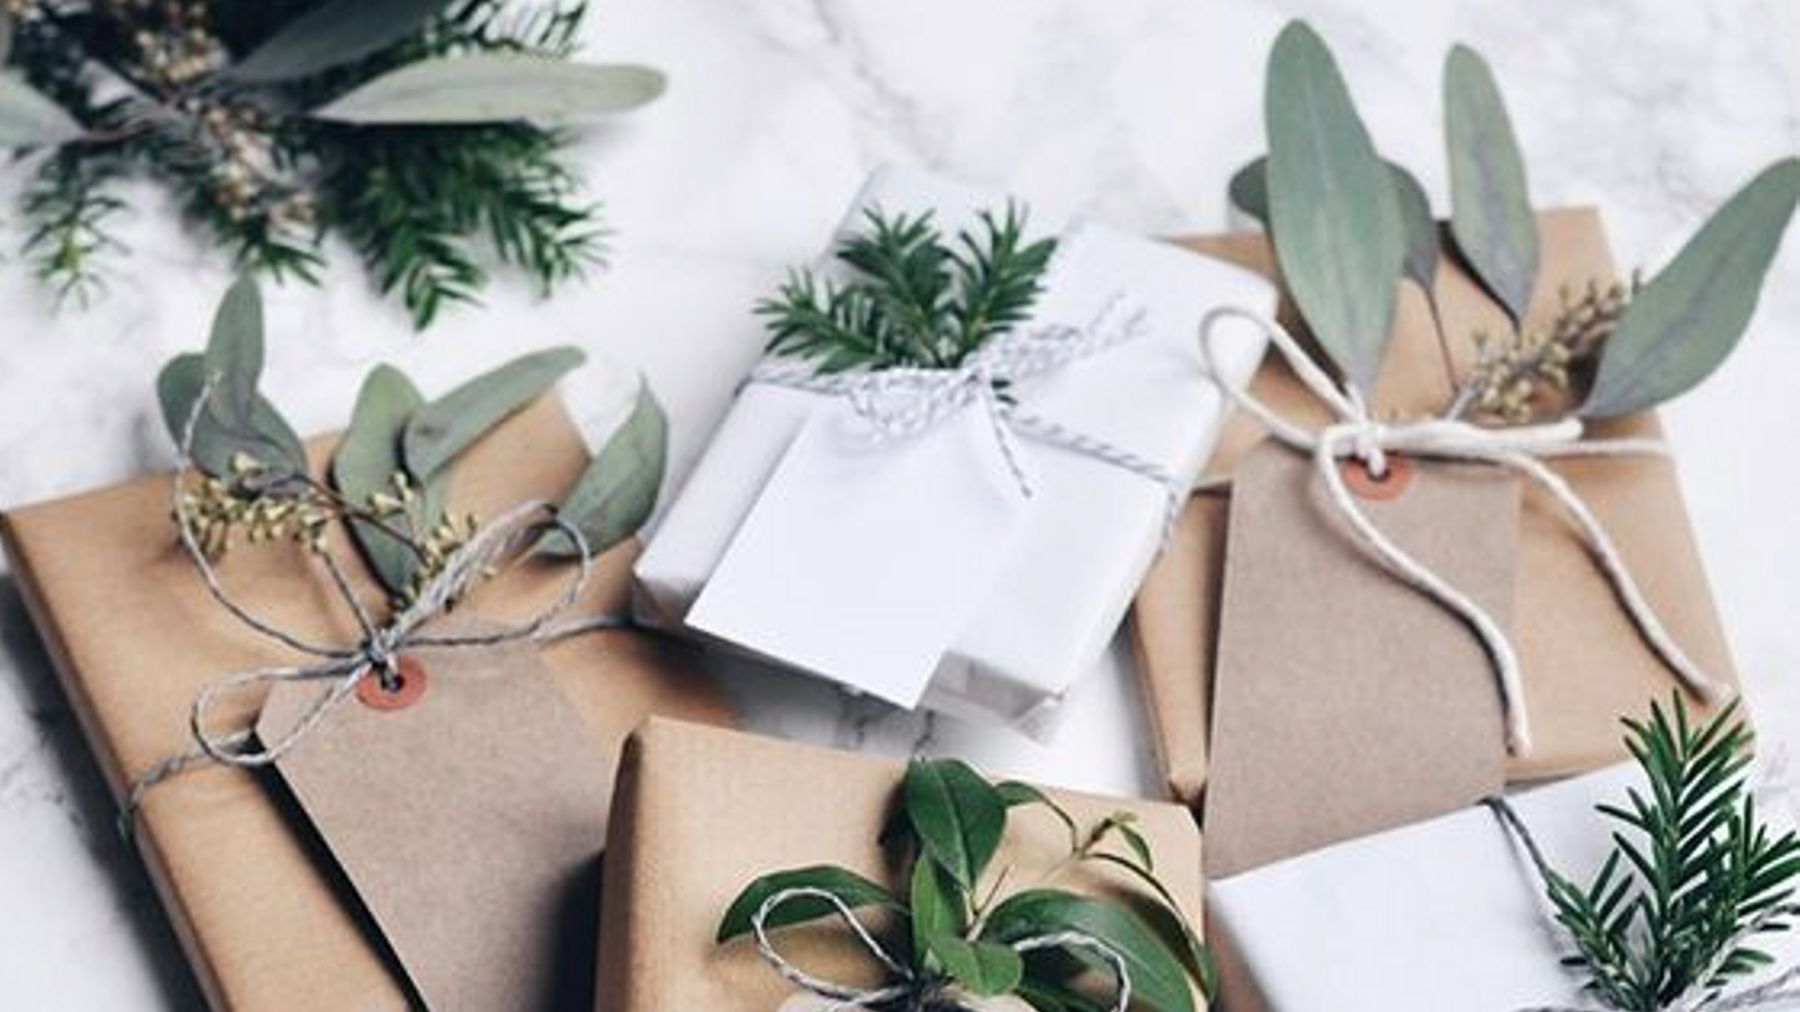 Christmas Pinterest.13 Ways To Make Your Christmas Gifts Look Pinterest Worthy